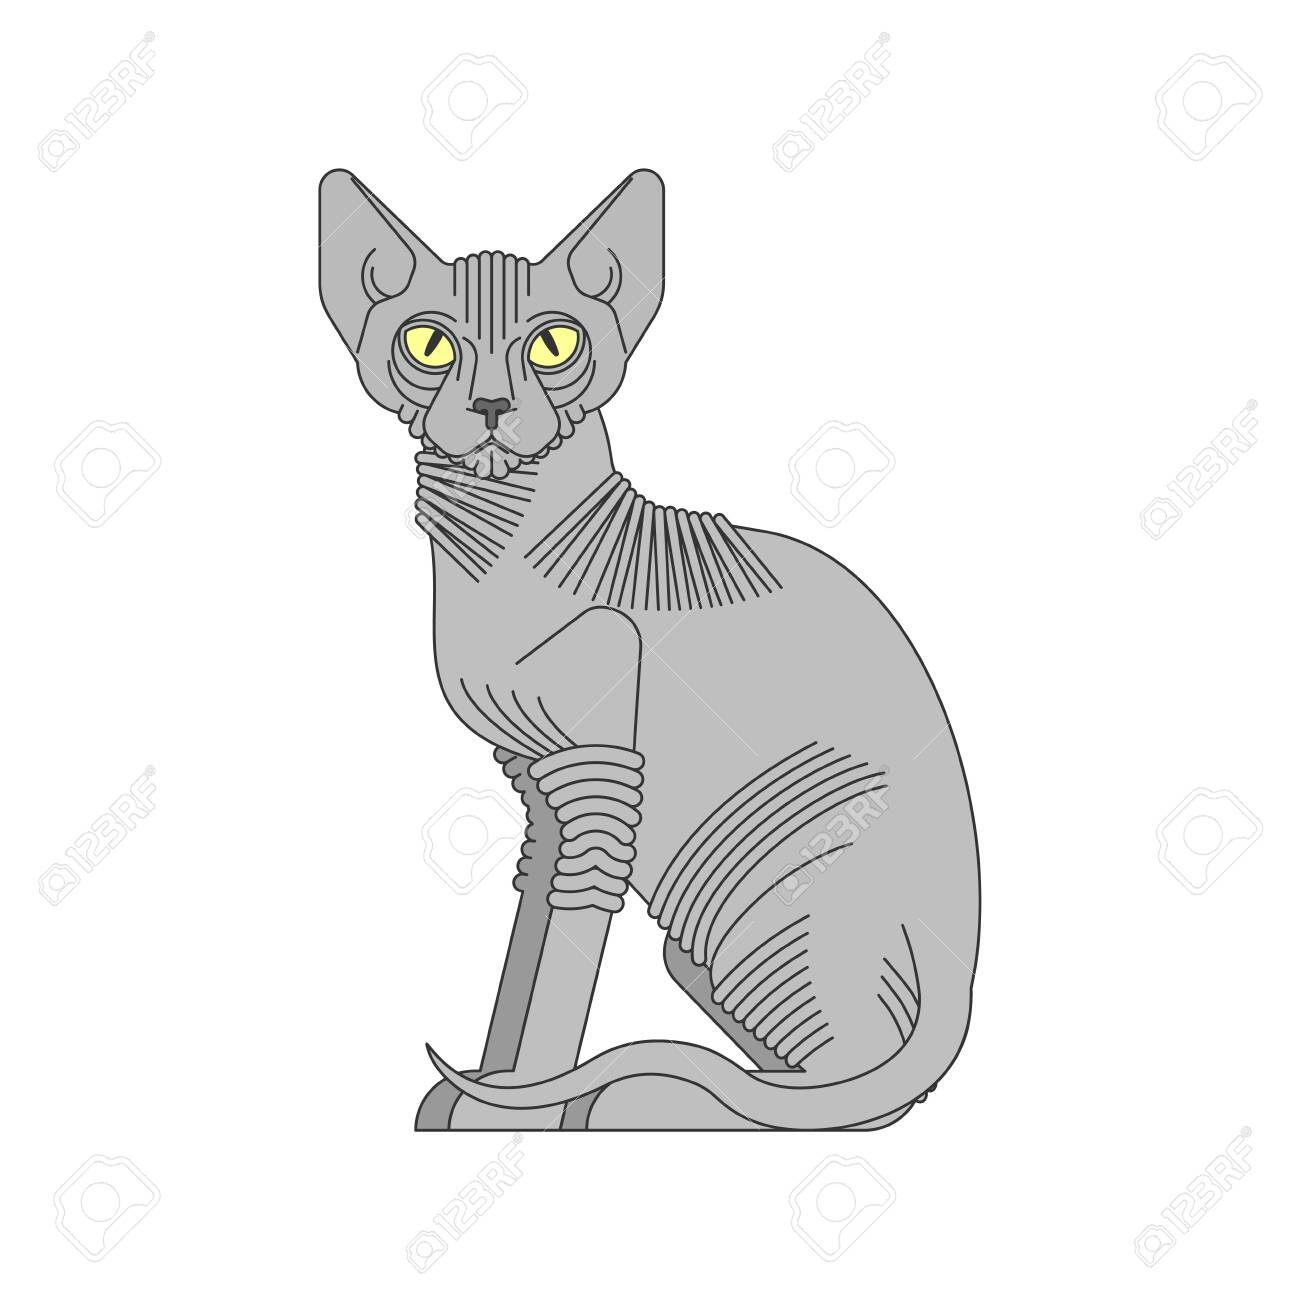 Sphynx Cat Isolated Hairless Cat Breeds Pet Vector Illustration Royalty Free Cliparts Vectors And Stock Illustration Image 147486016